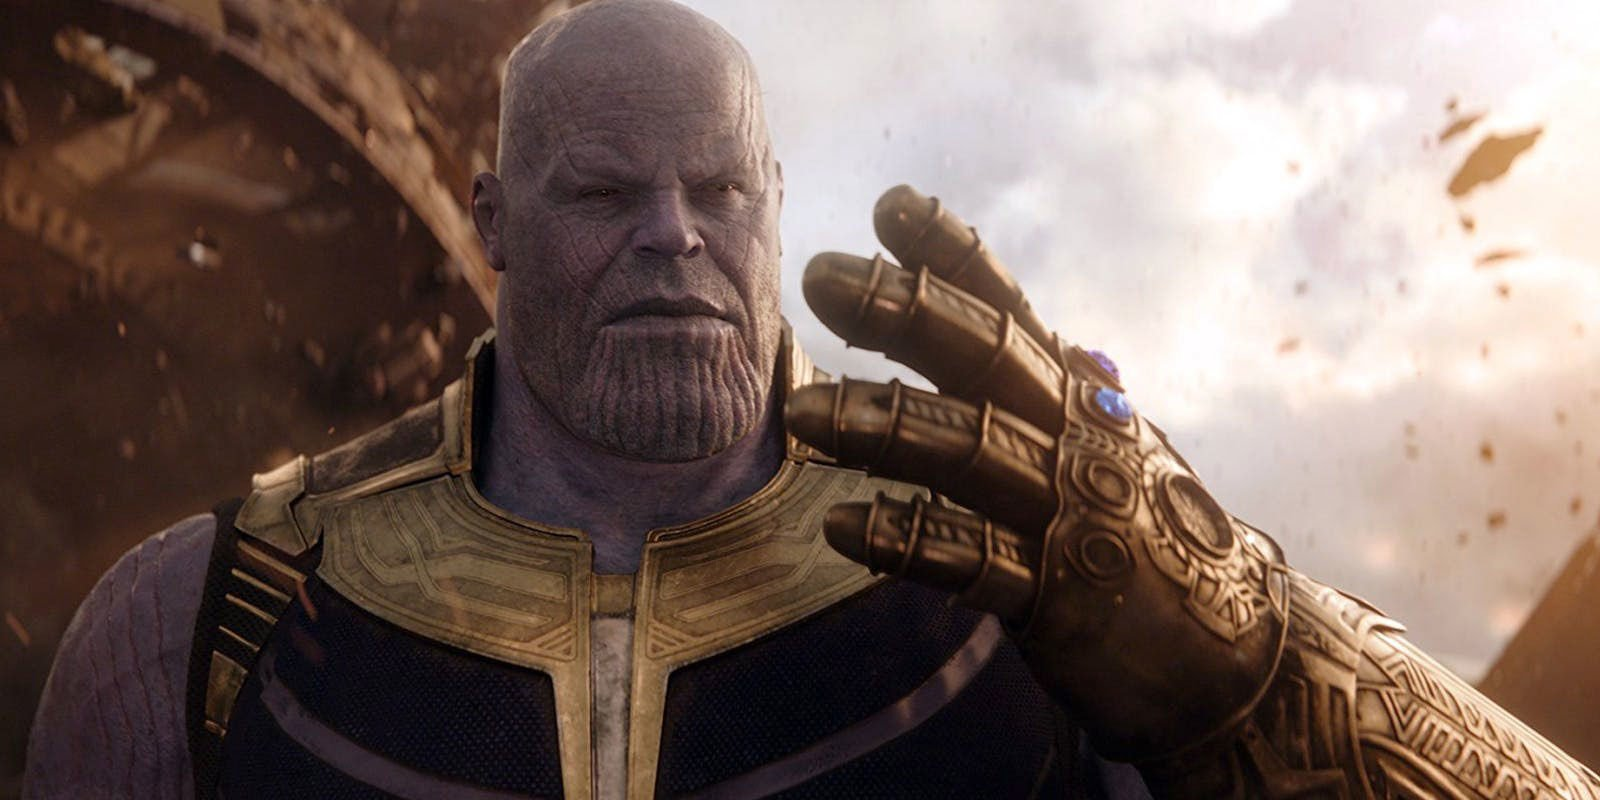 Infinity War's climax was almost saved for Avengers 4, say writers